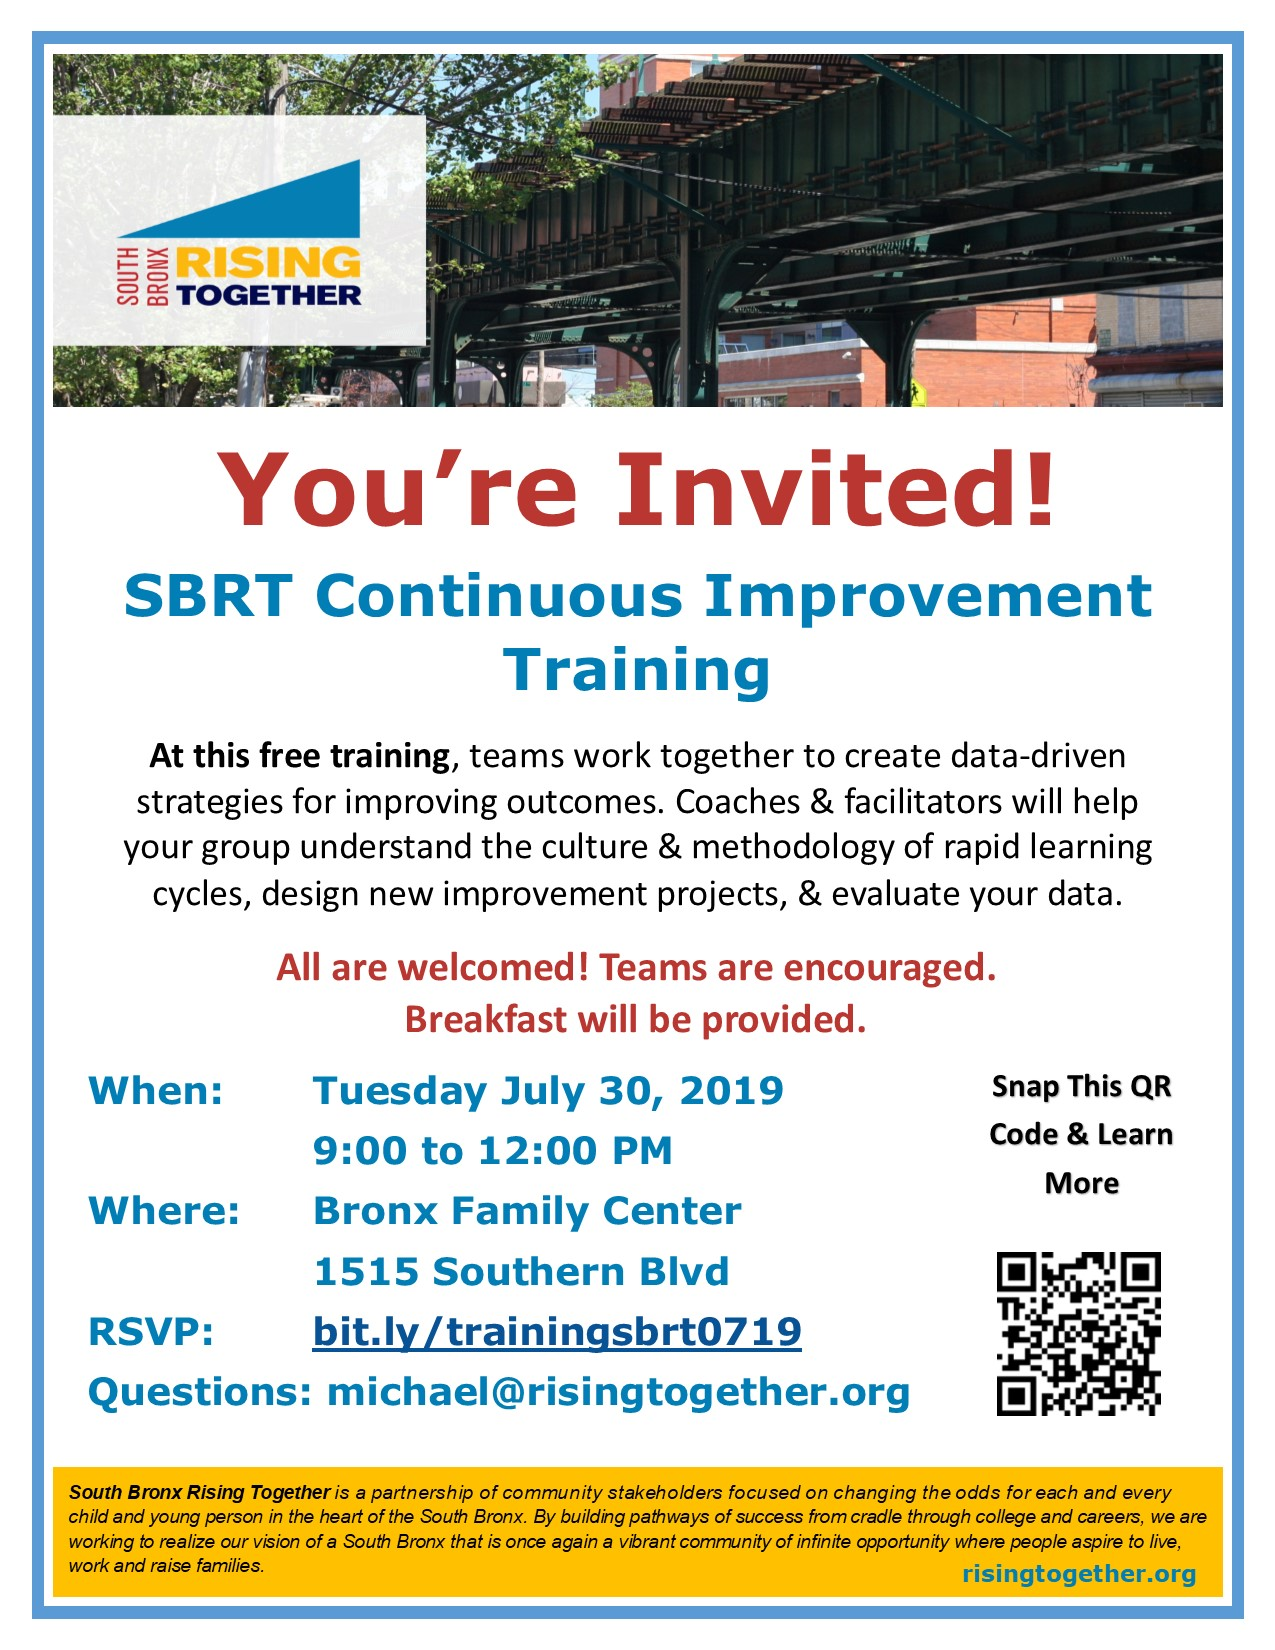 Flyer - SBRT Continuous Improvement Training - Michael Partis.jpg